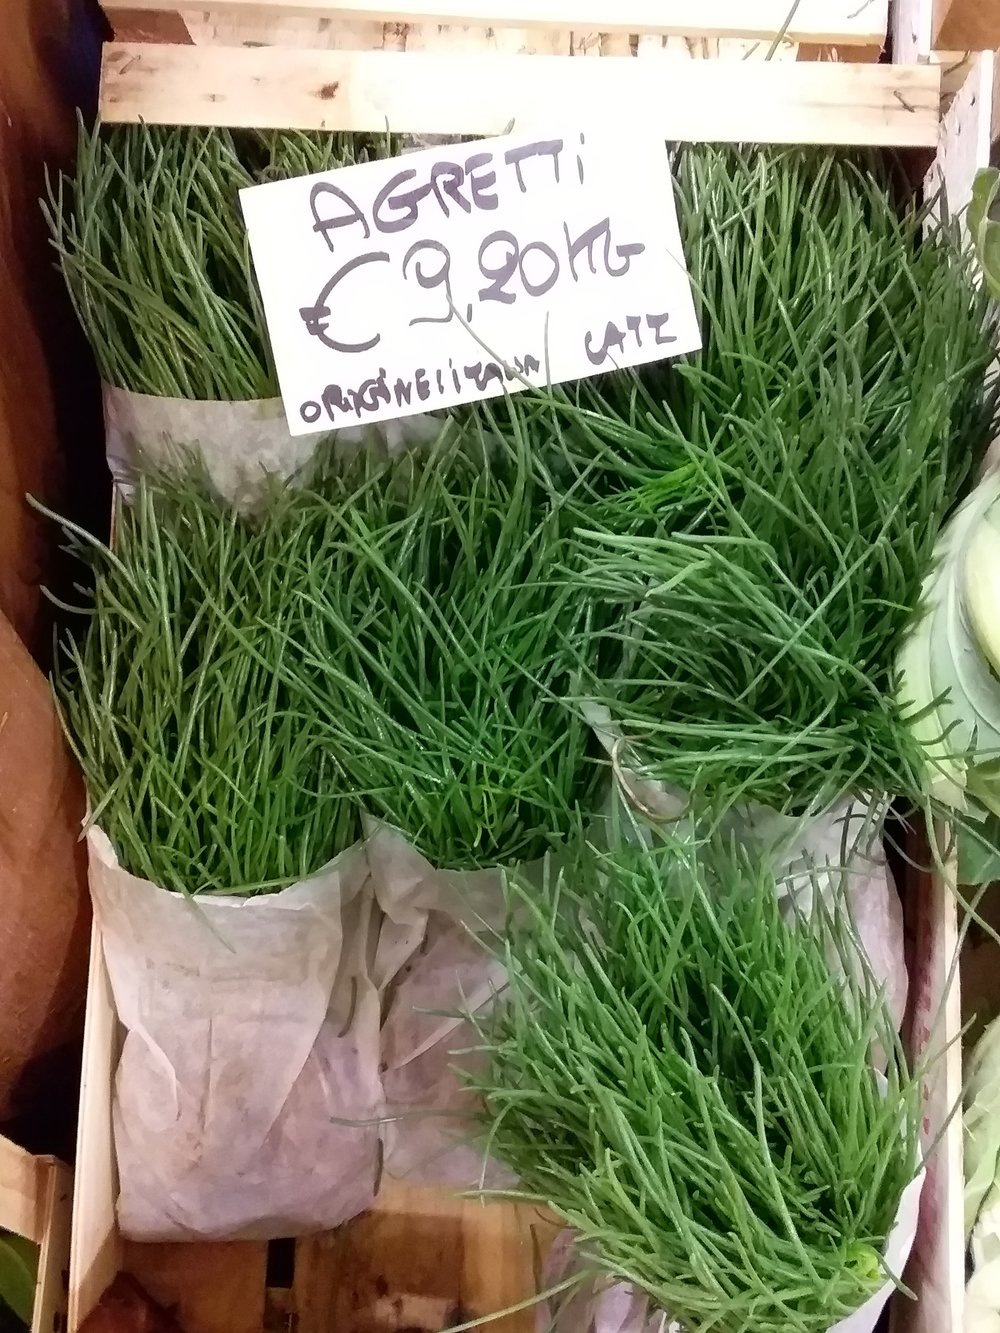 Agretti for sale in the ortofrutta